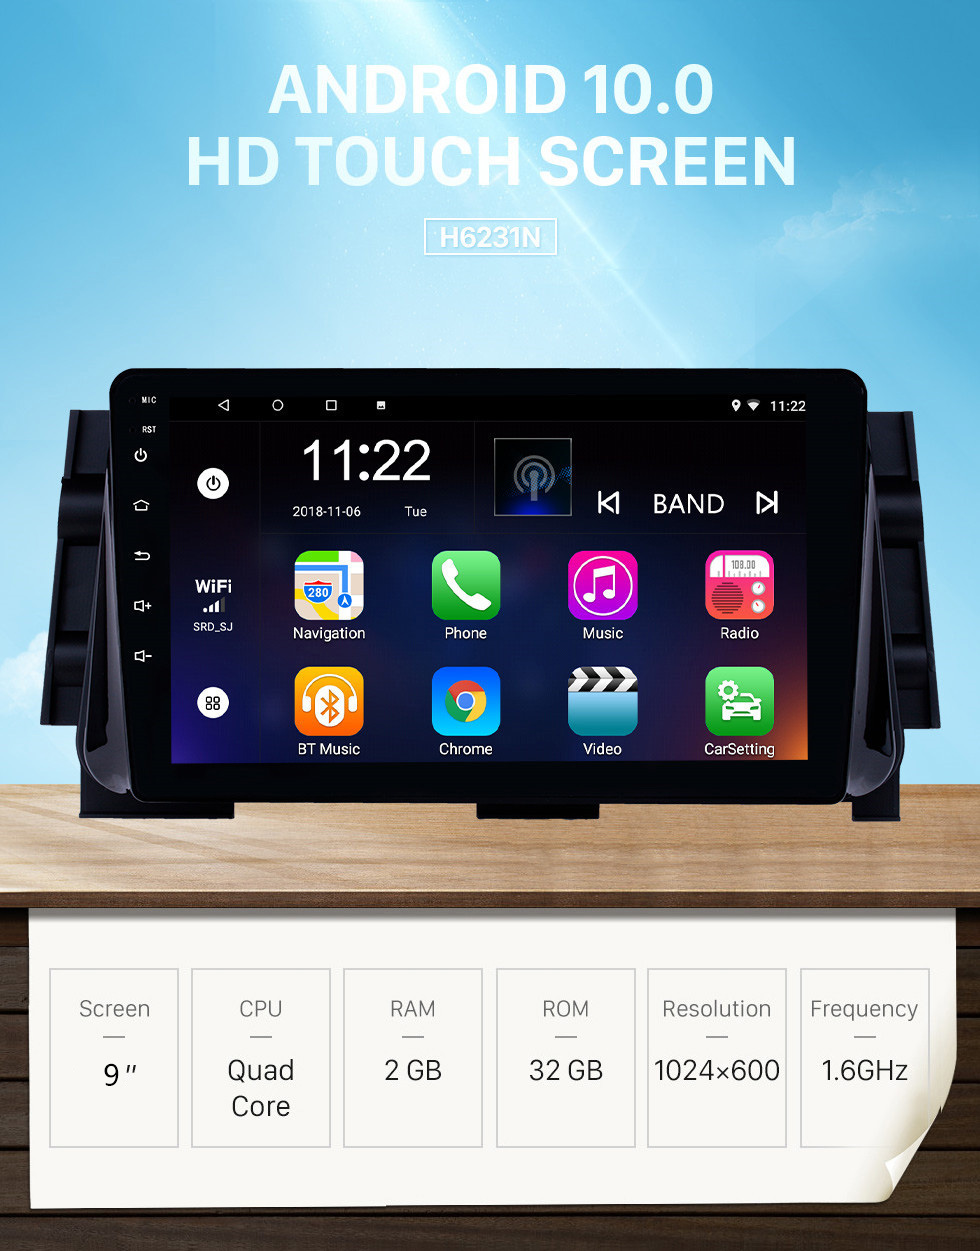 Seicane Android 10.0 9 inch HD Touchscreen GPS Navigation Radio for 2017 Nissan Micra with Bluetooth USB WIFI AUX support Backup camera Carplay SWC OBD